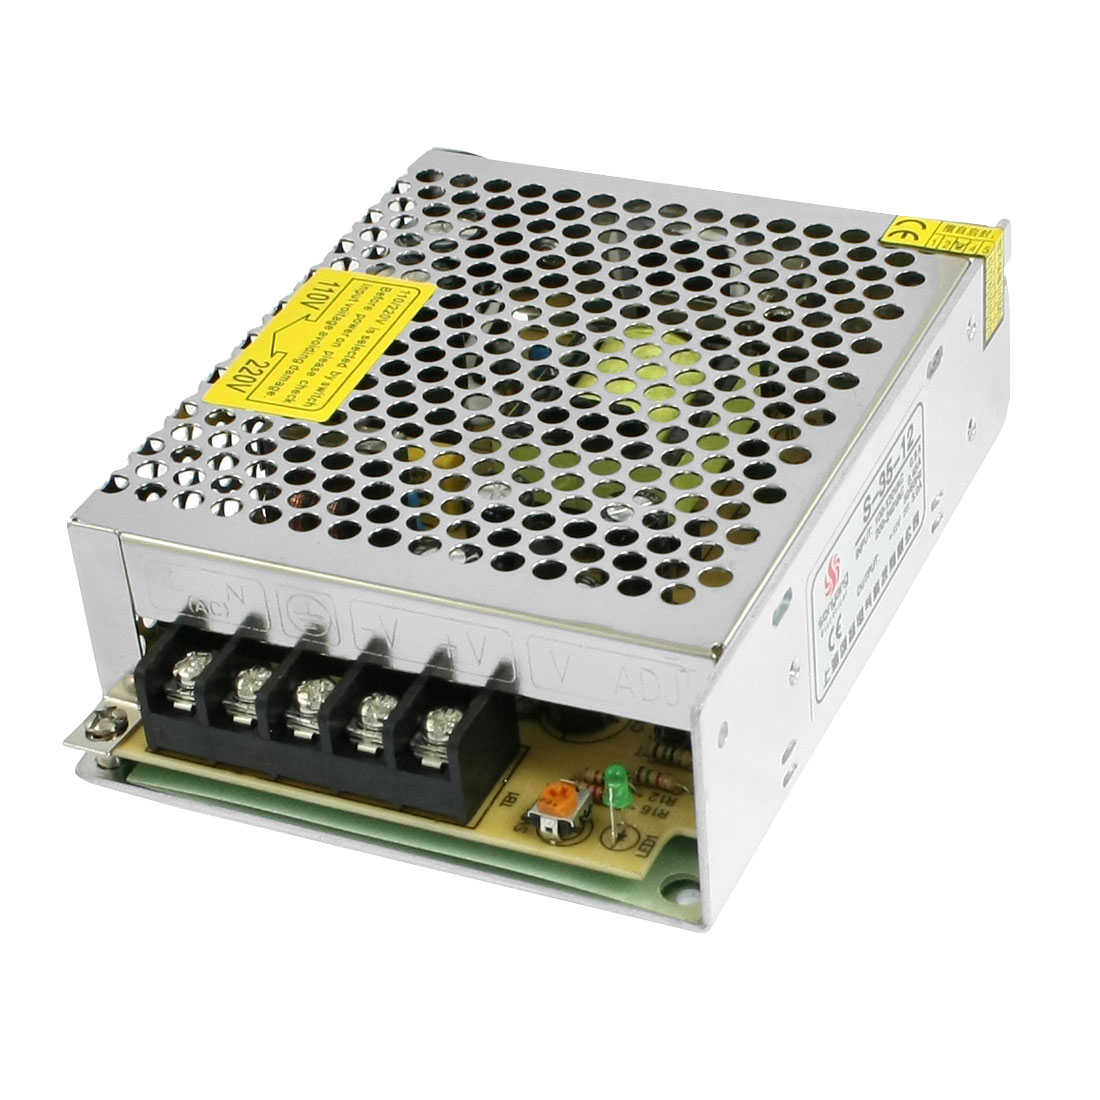 AC 100-120V 200-240V DC 12V 3A 35W Switching Power Supply Driver for LED Strip Light